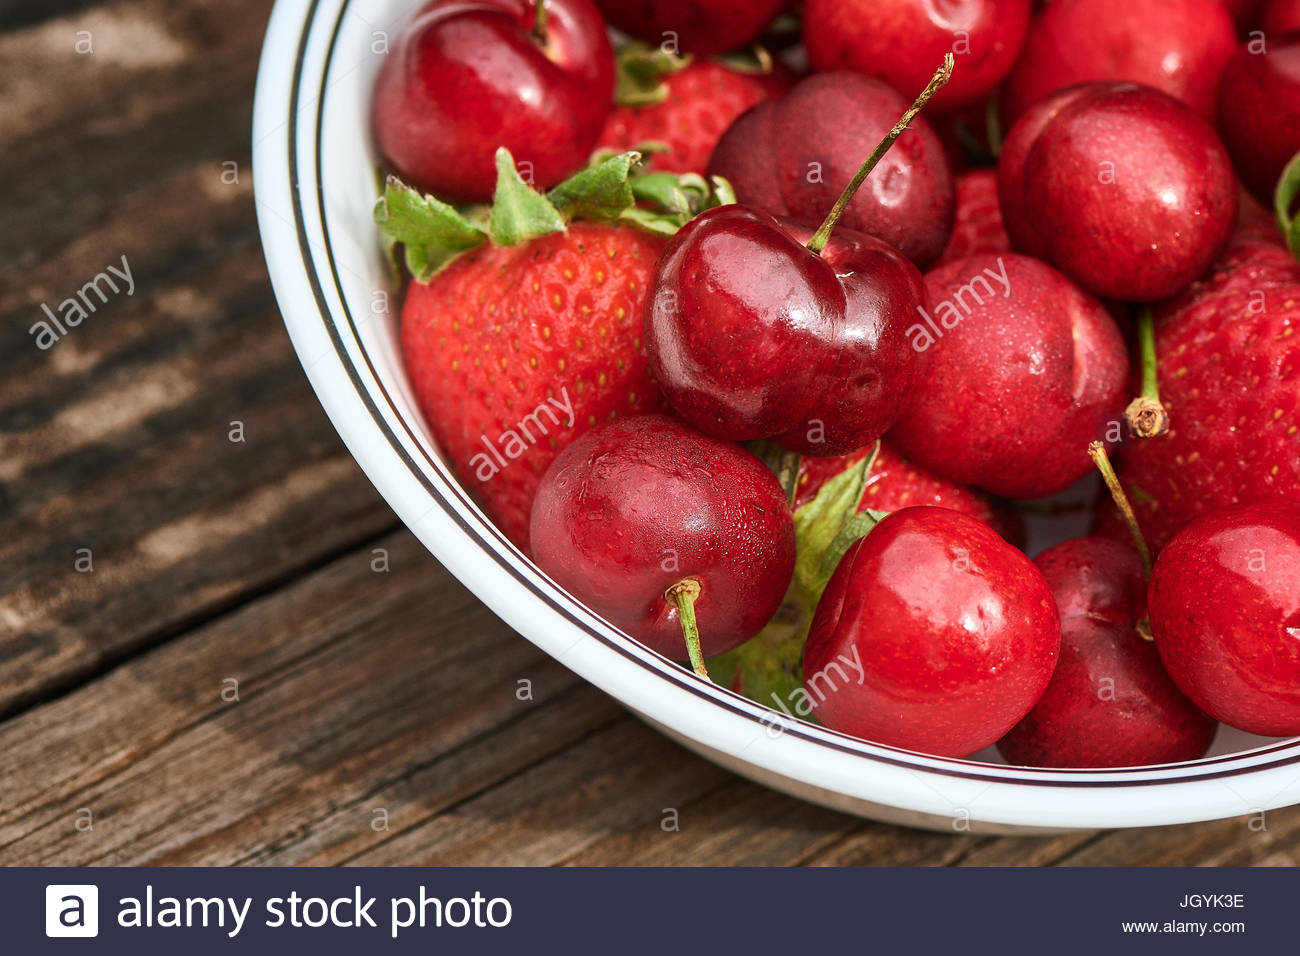 Bowl of fresh organic strawberries and cherries on a vintage wood table - Stock Image